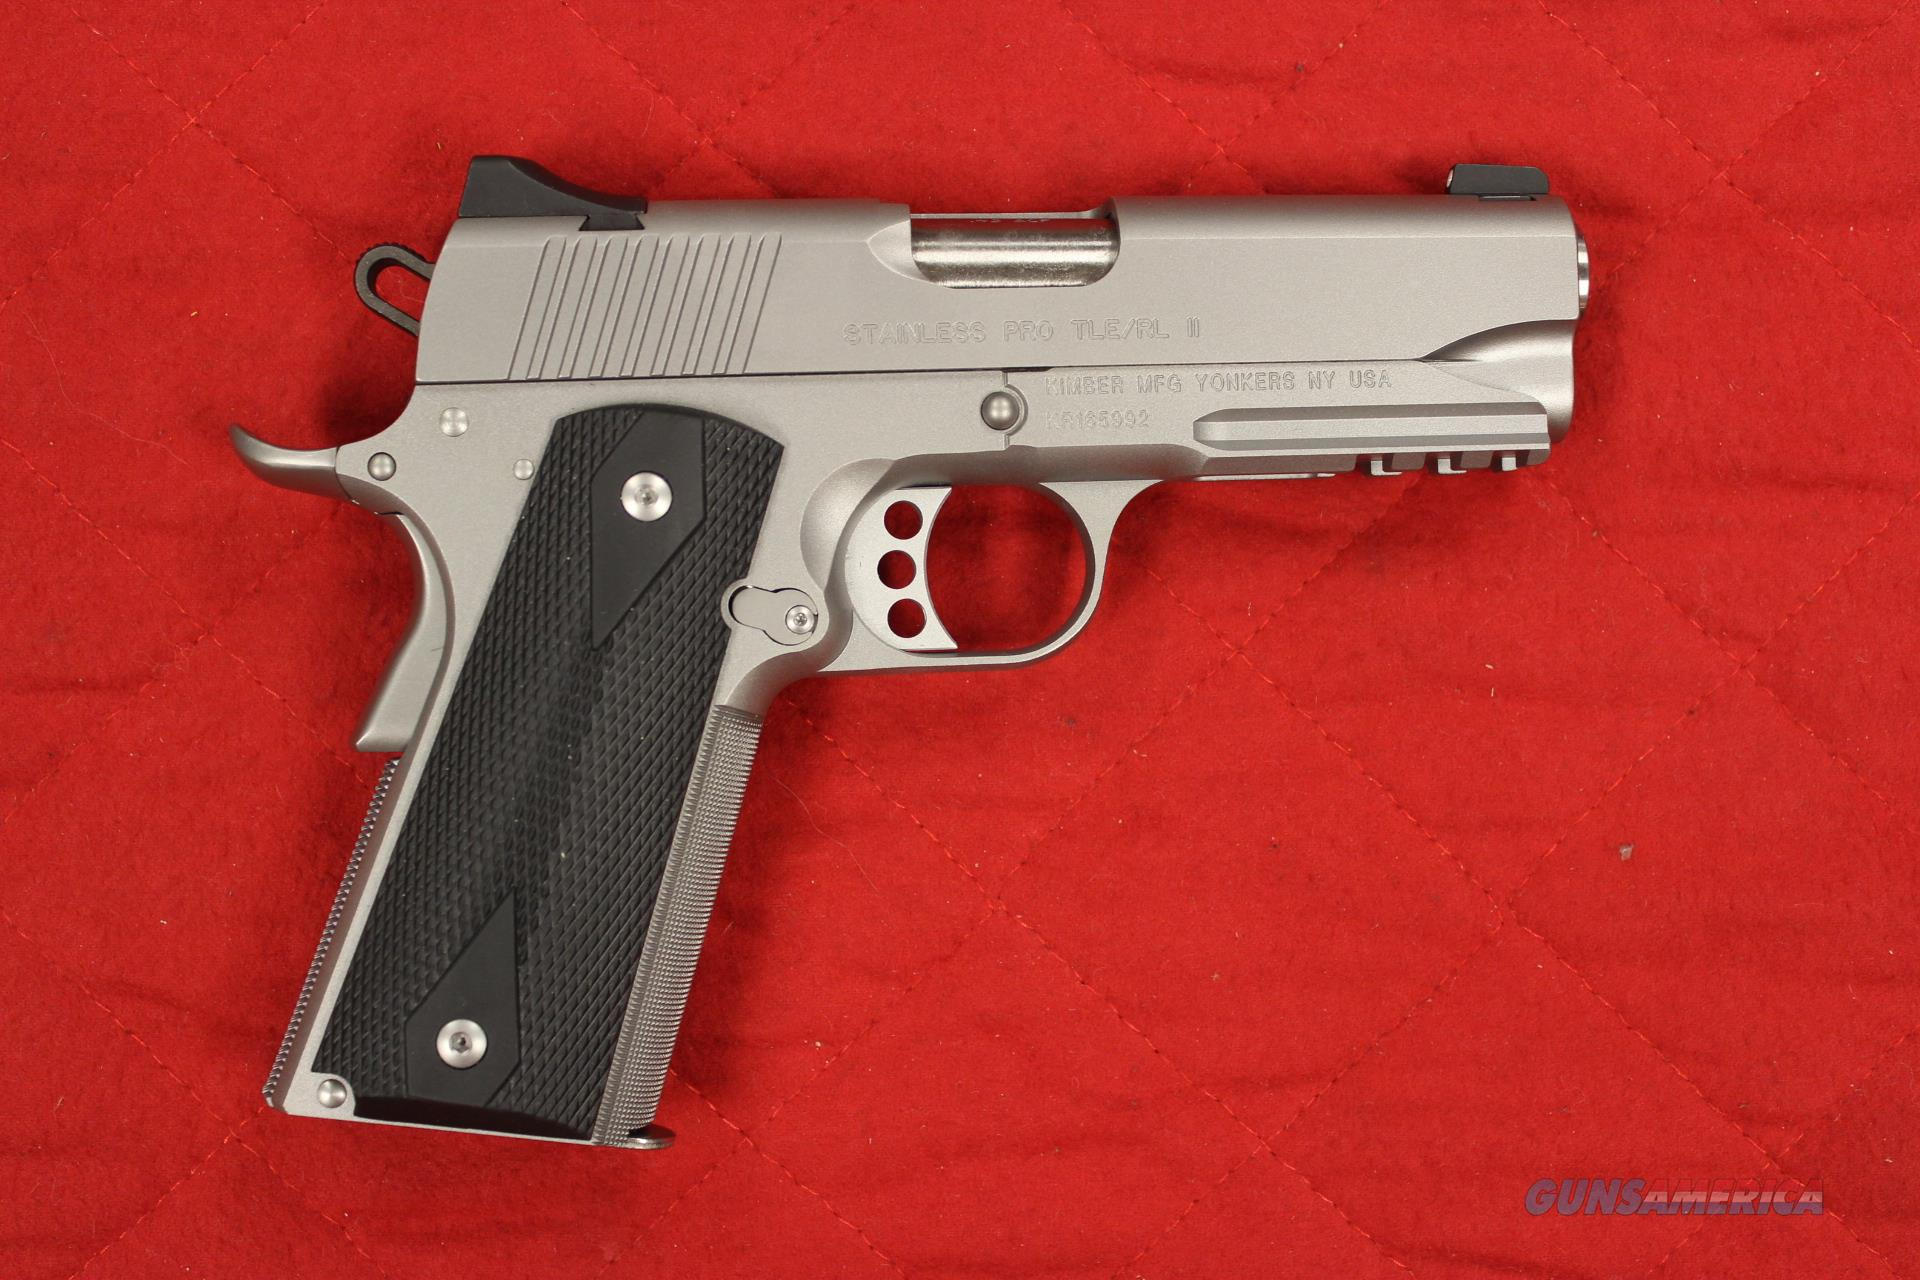 Kimber Stainless Pro TLE/RL inventory reduction sale ONLY ONE available at this price  Guns > Pistols > Kimber of America Pistols